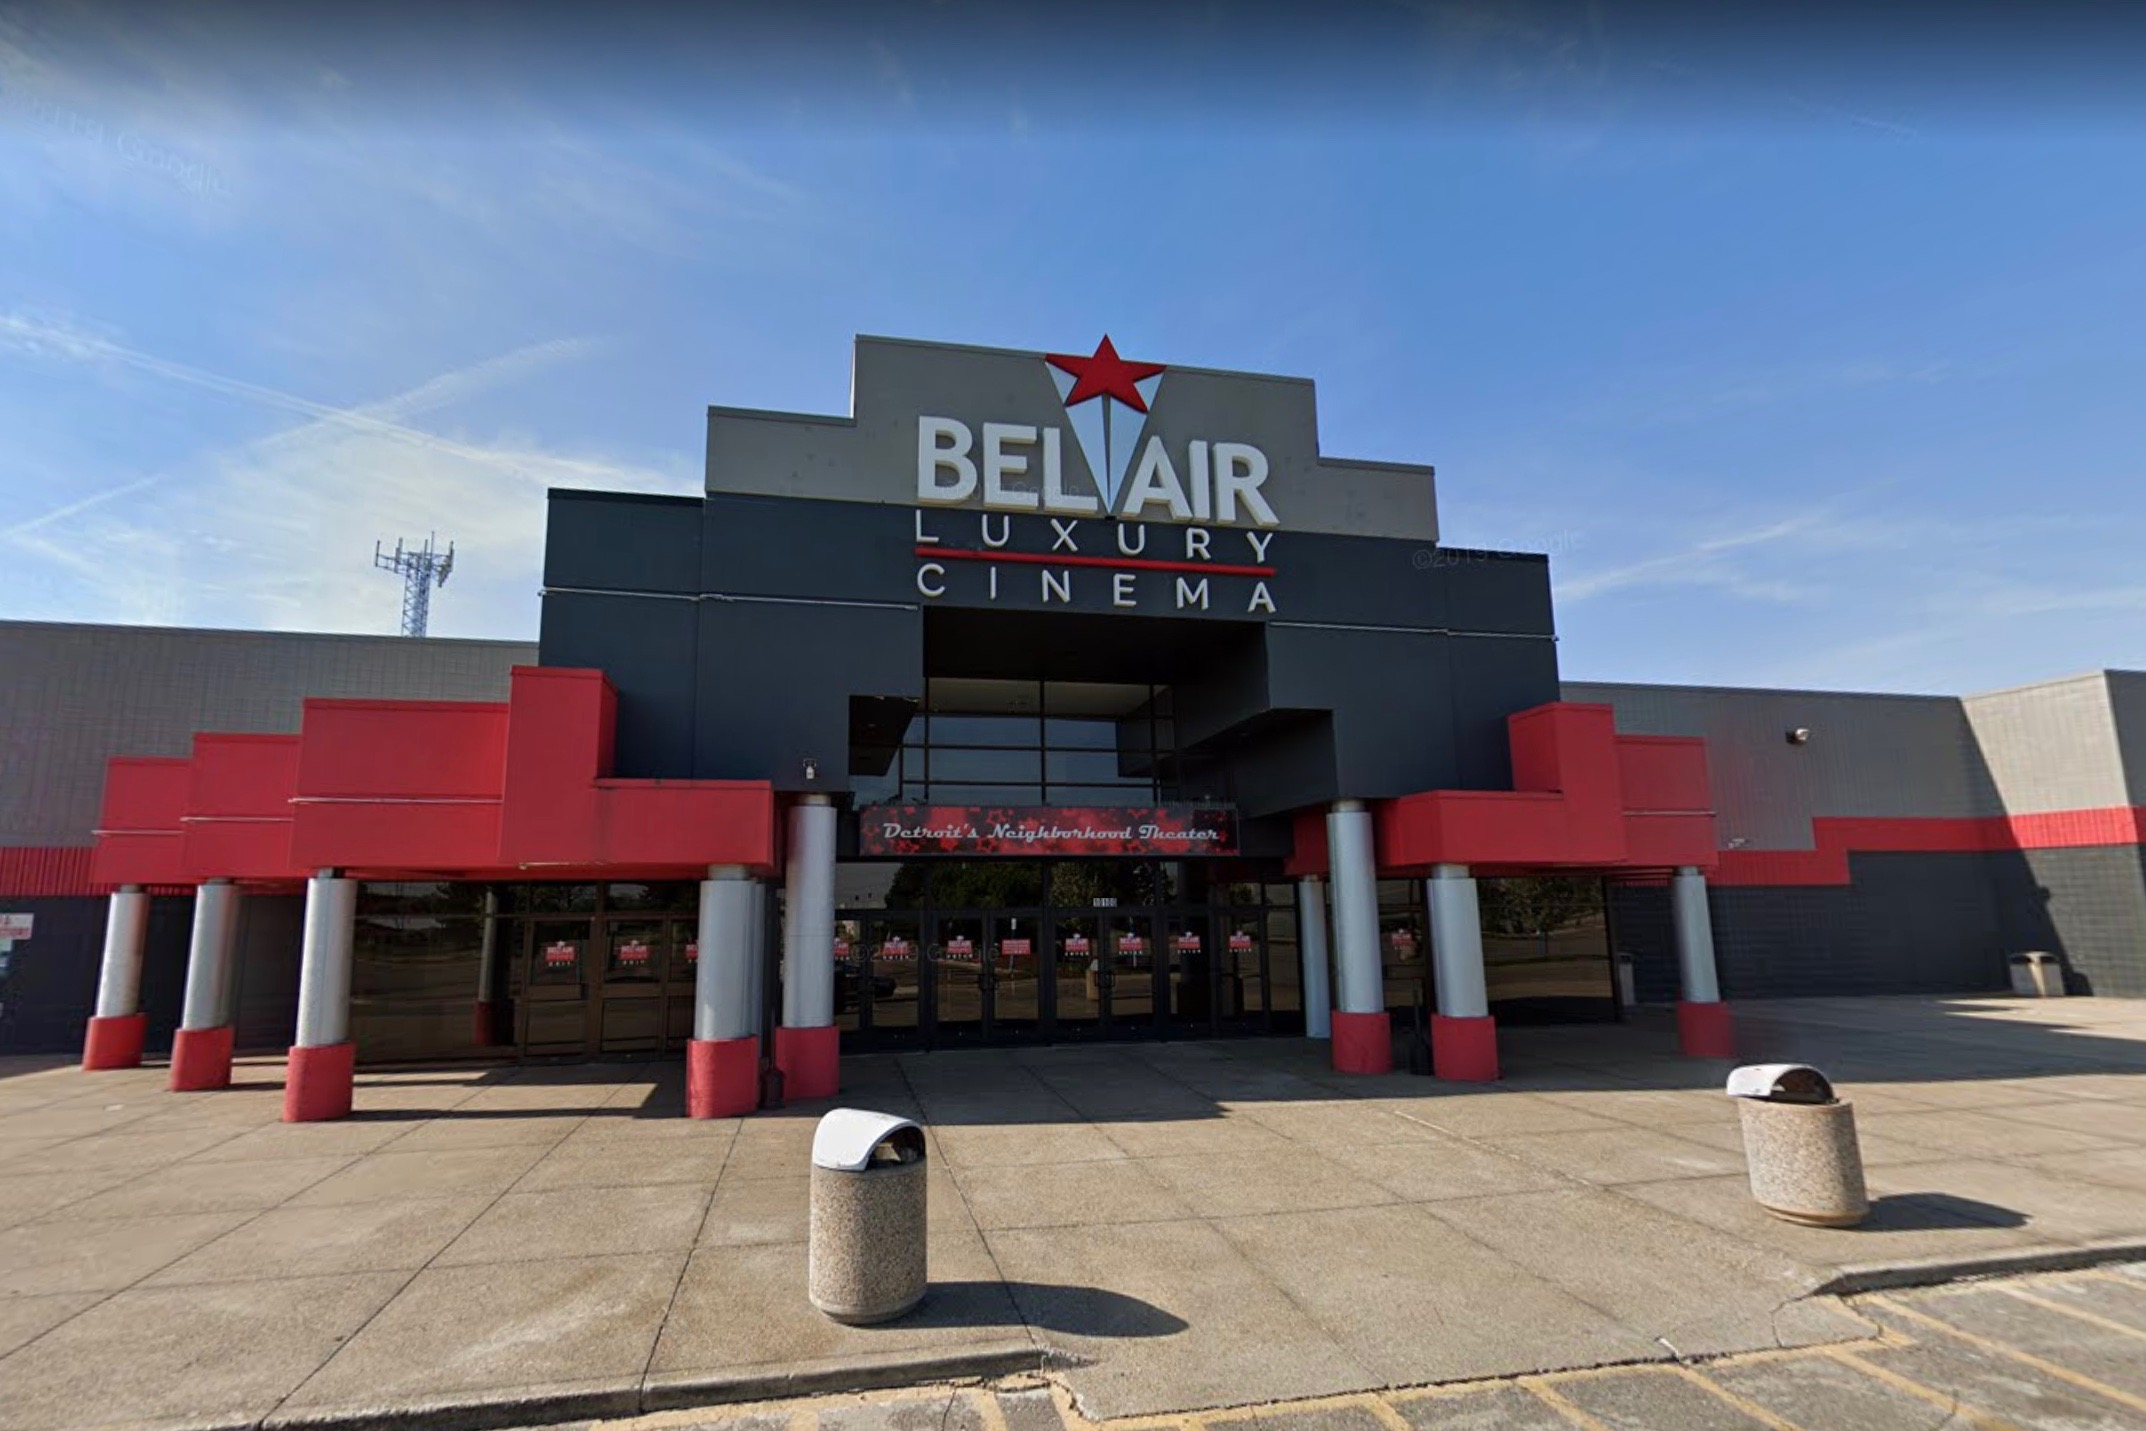 """Front of a red and black movie theater. Over the glass entrance a sign reads """"Bel Air Luxury Cinema."""""""